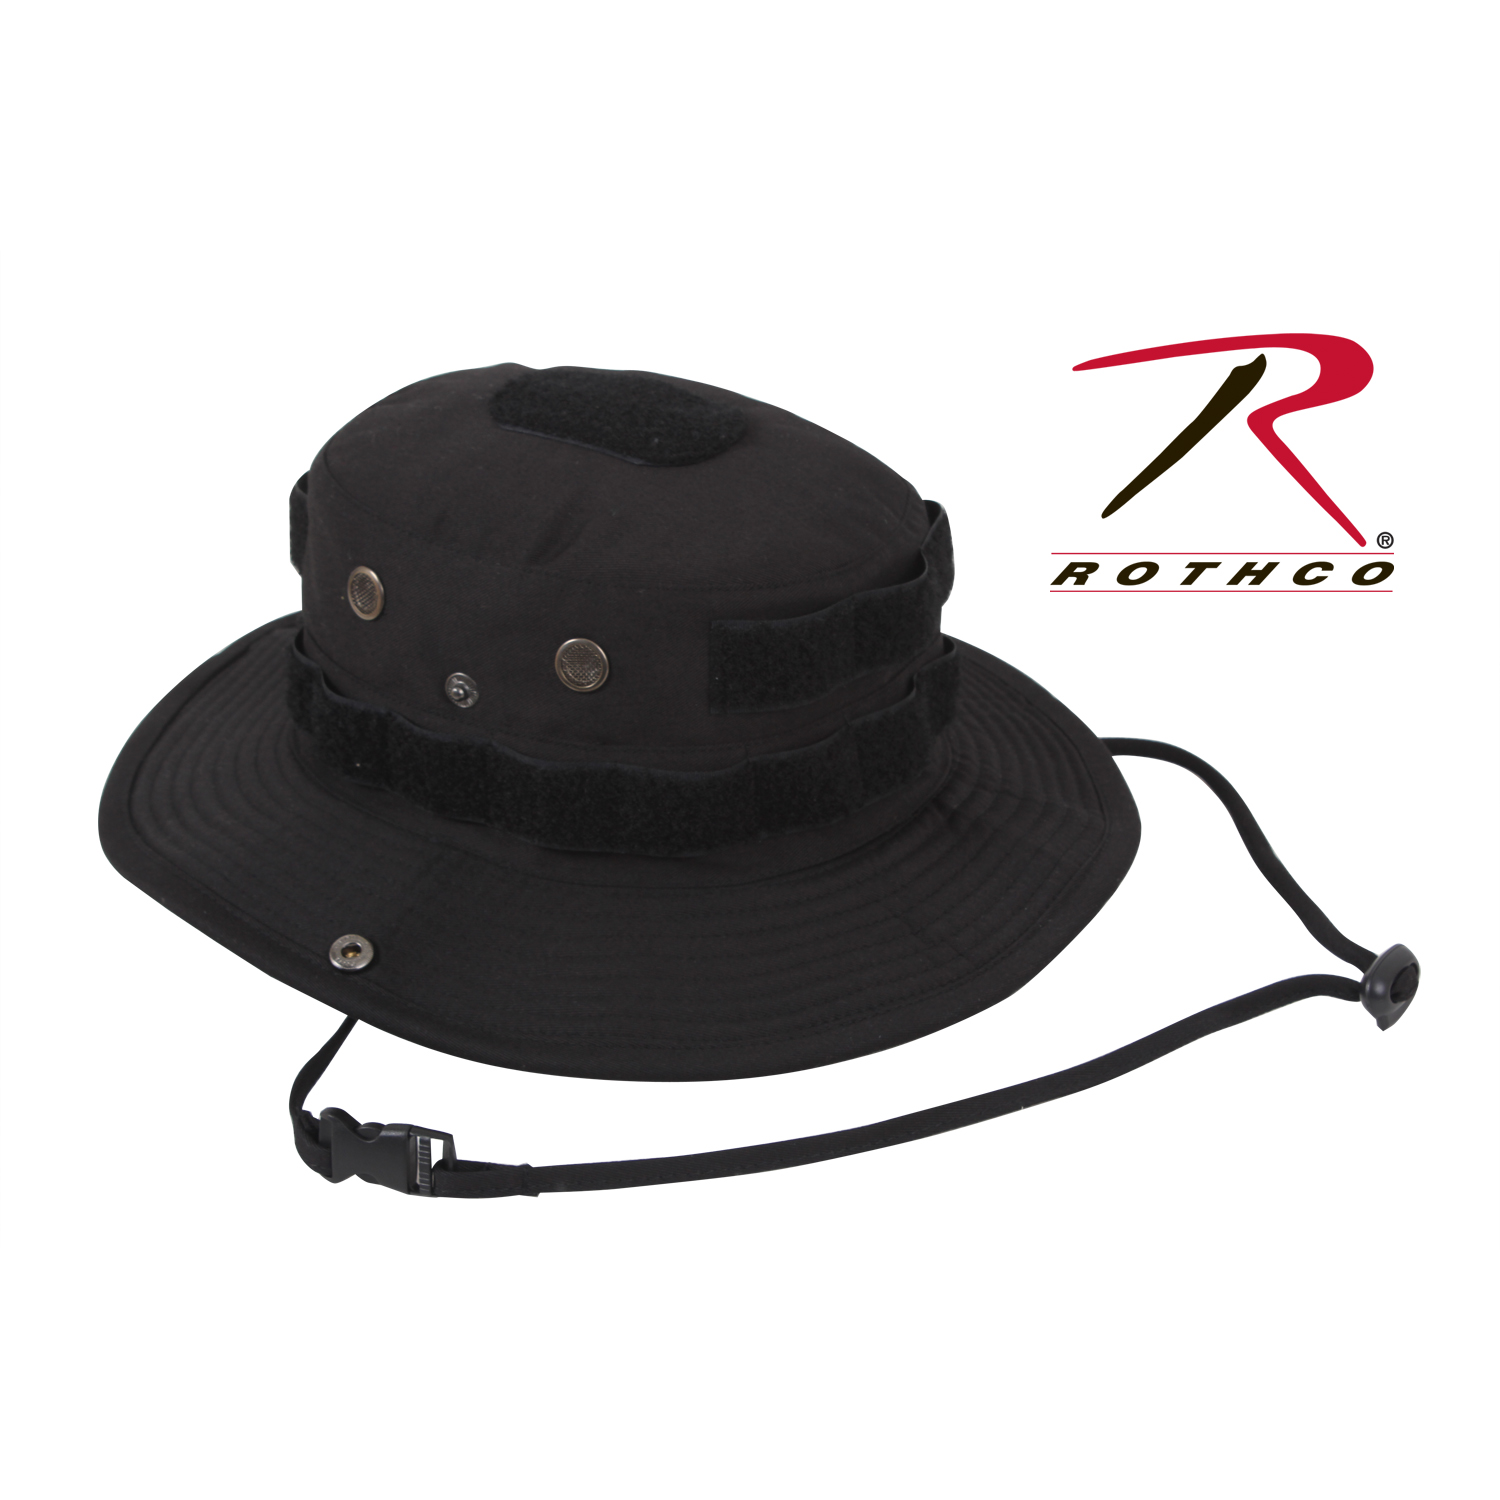 4be38247baa Rothco Tactical Boonie Hat